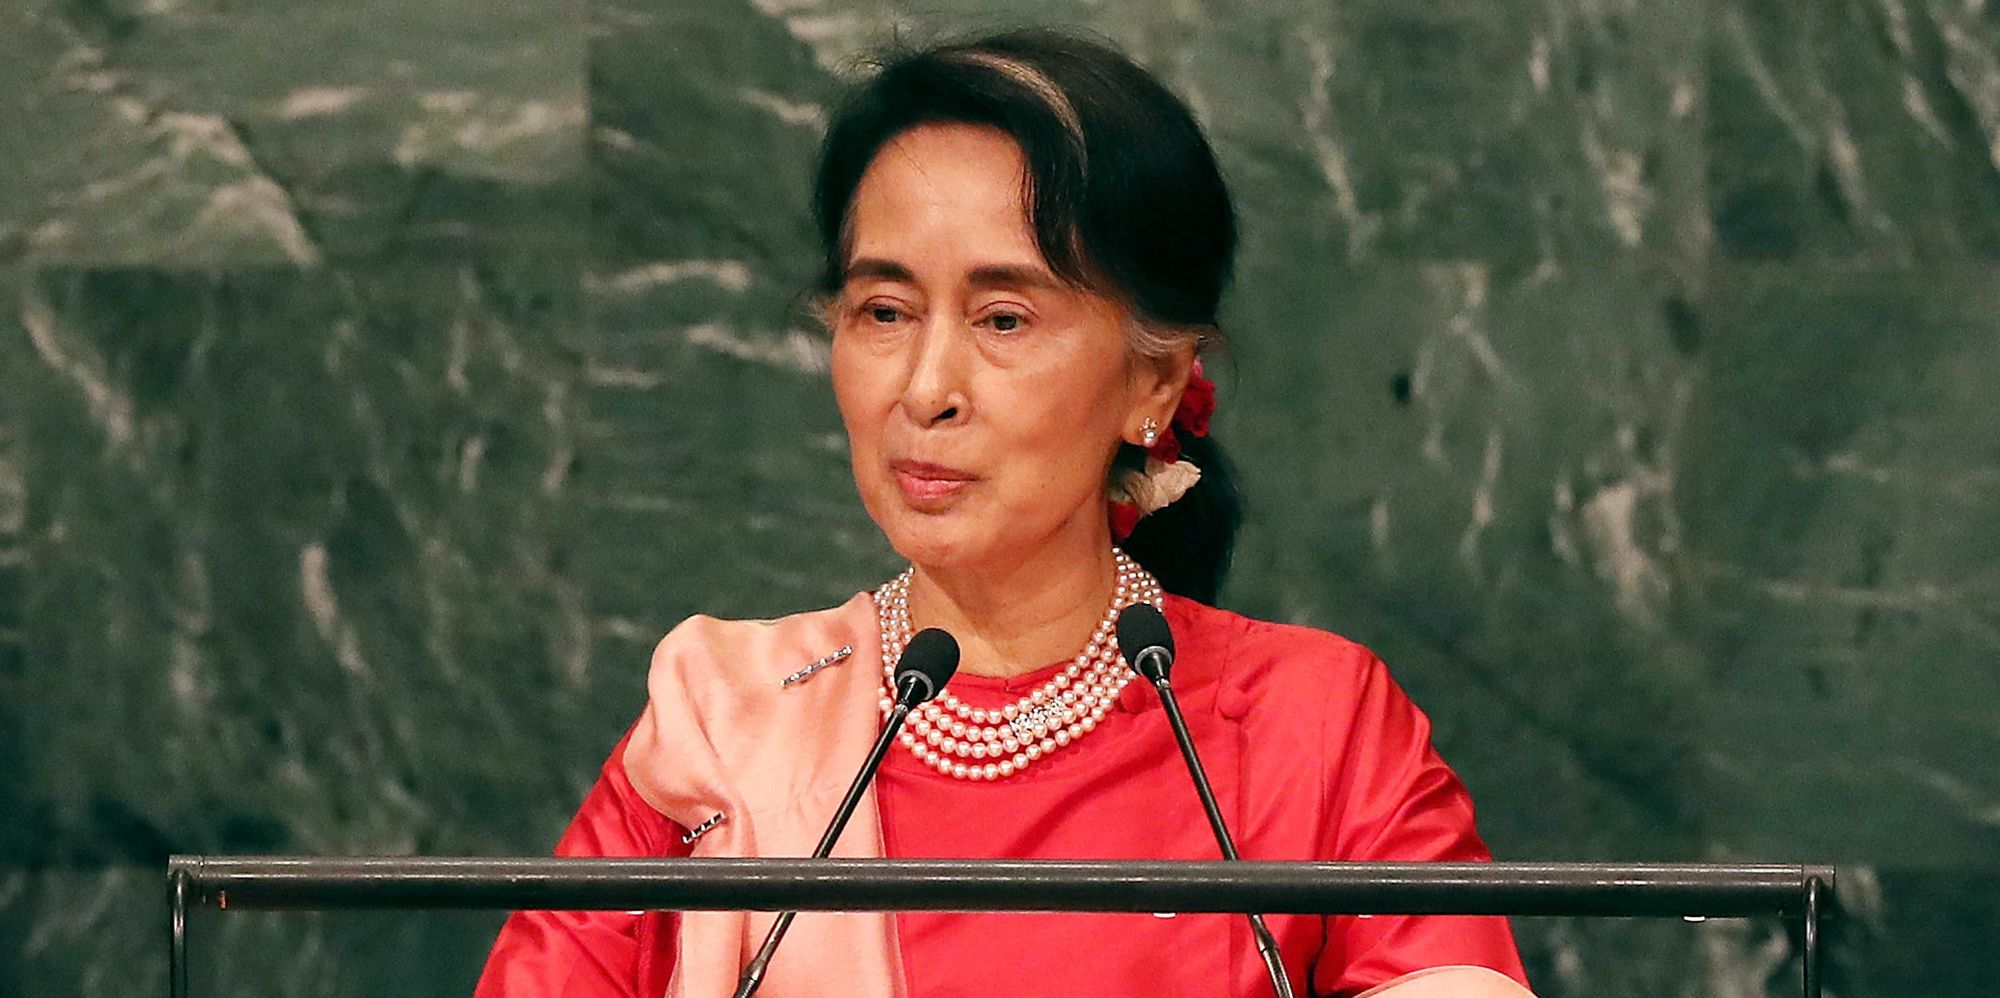 in first un address as leader aung san suu kyi defends efforts on in first un address as leader aung san suu kyi defends efforts on rohingyas the huffington post